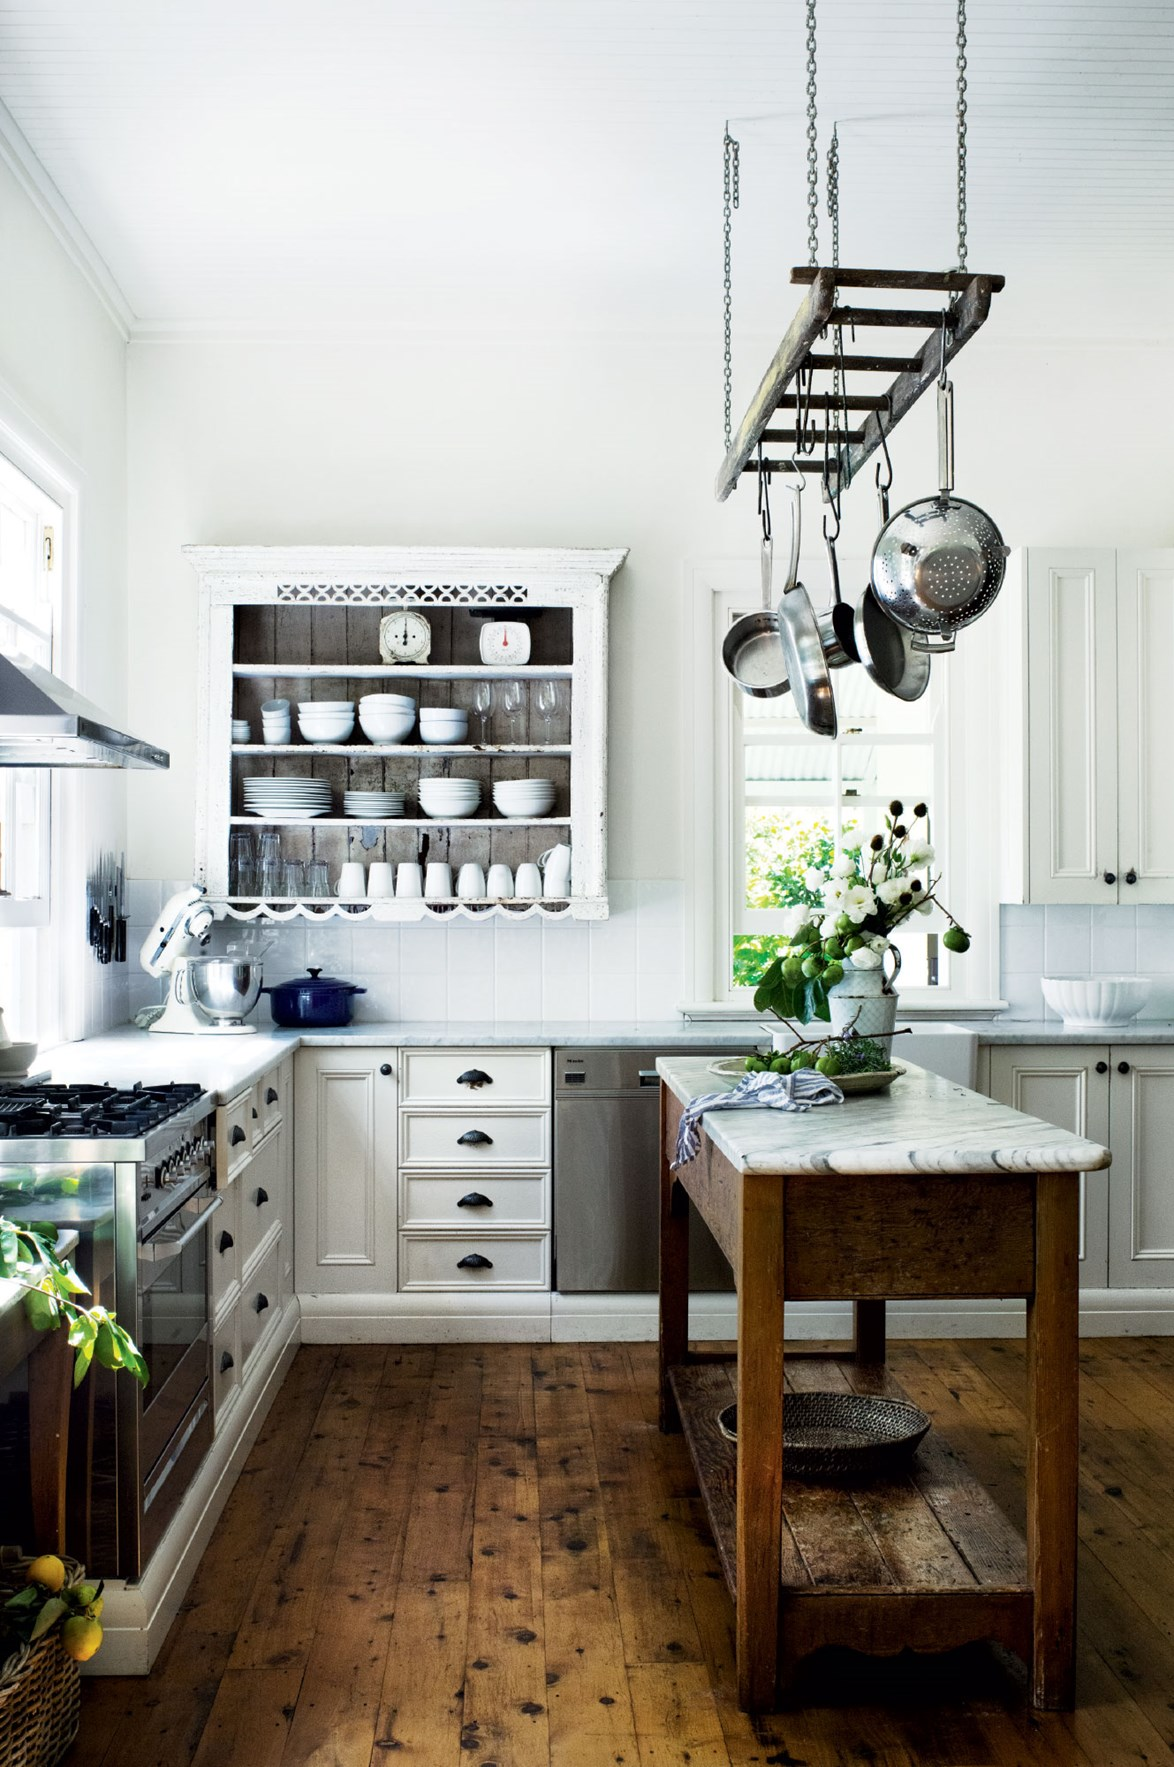 """The kitchen at [Willow Farm Homestead](https://www.homestolove.com.au/willow-farm-homestead-13727